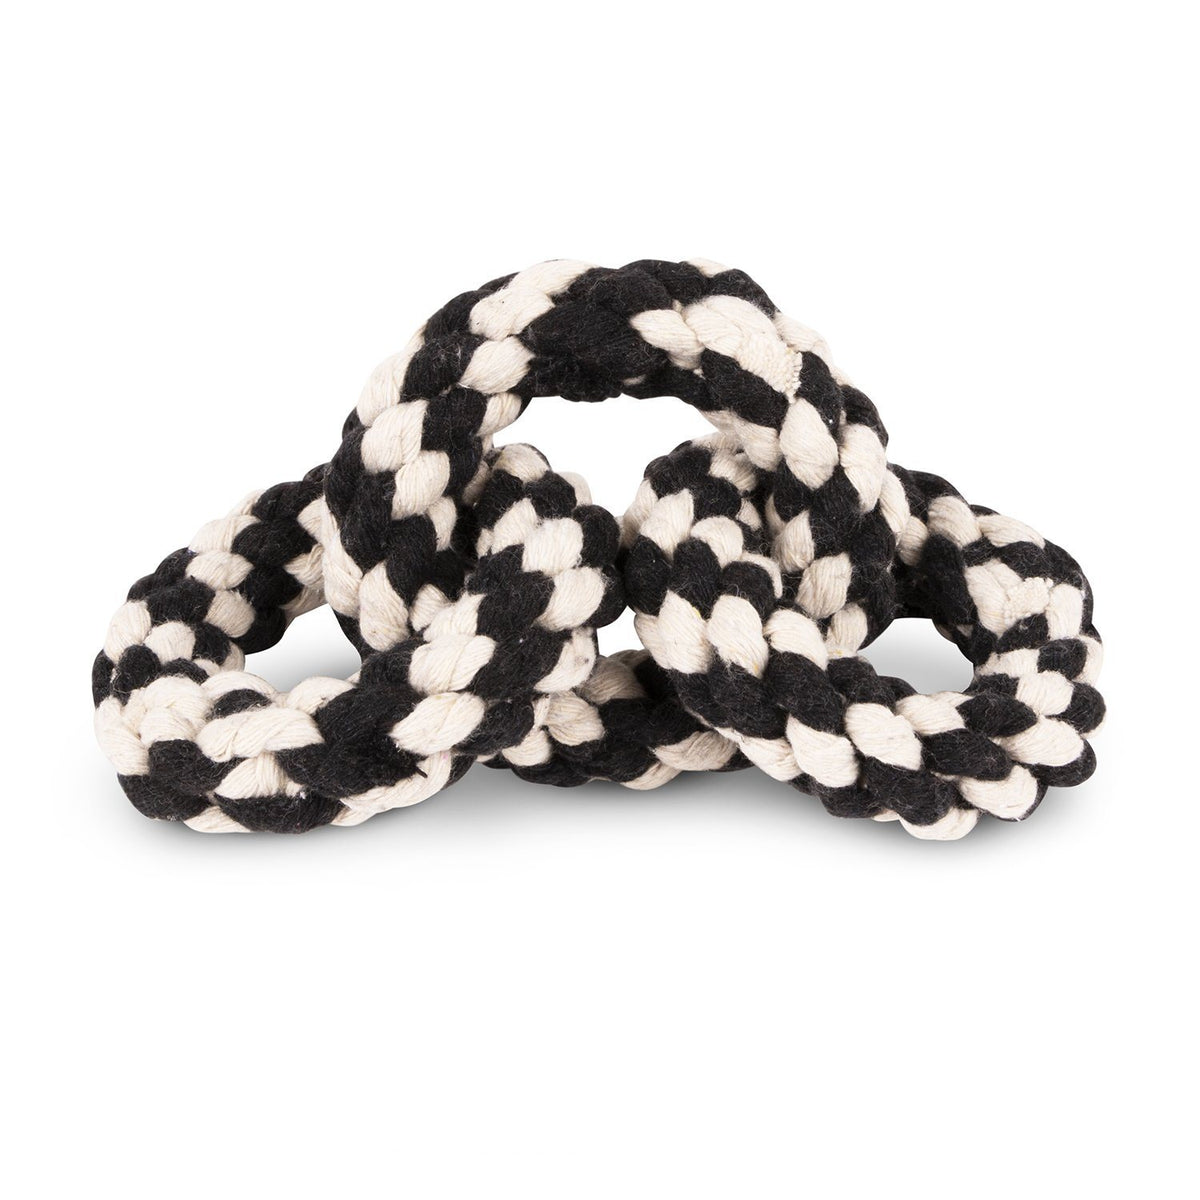 Rope Toy - Striped Tri-Ring Rope Dog Toy